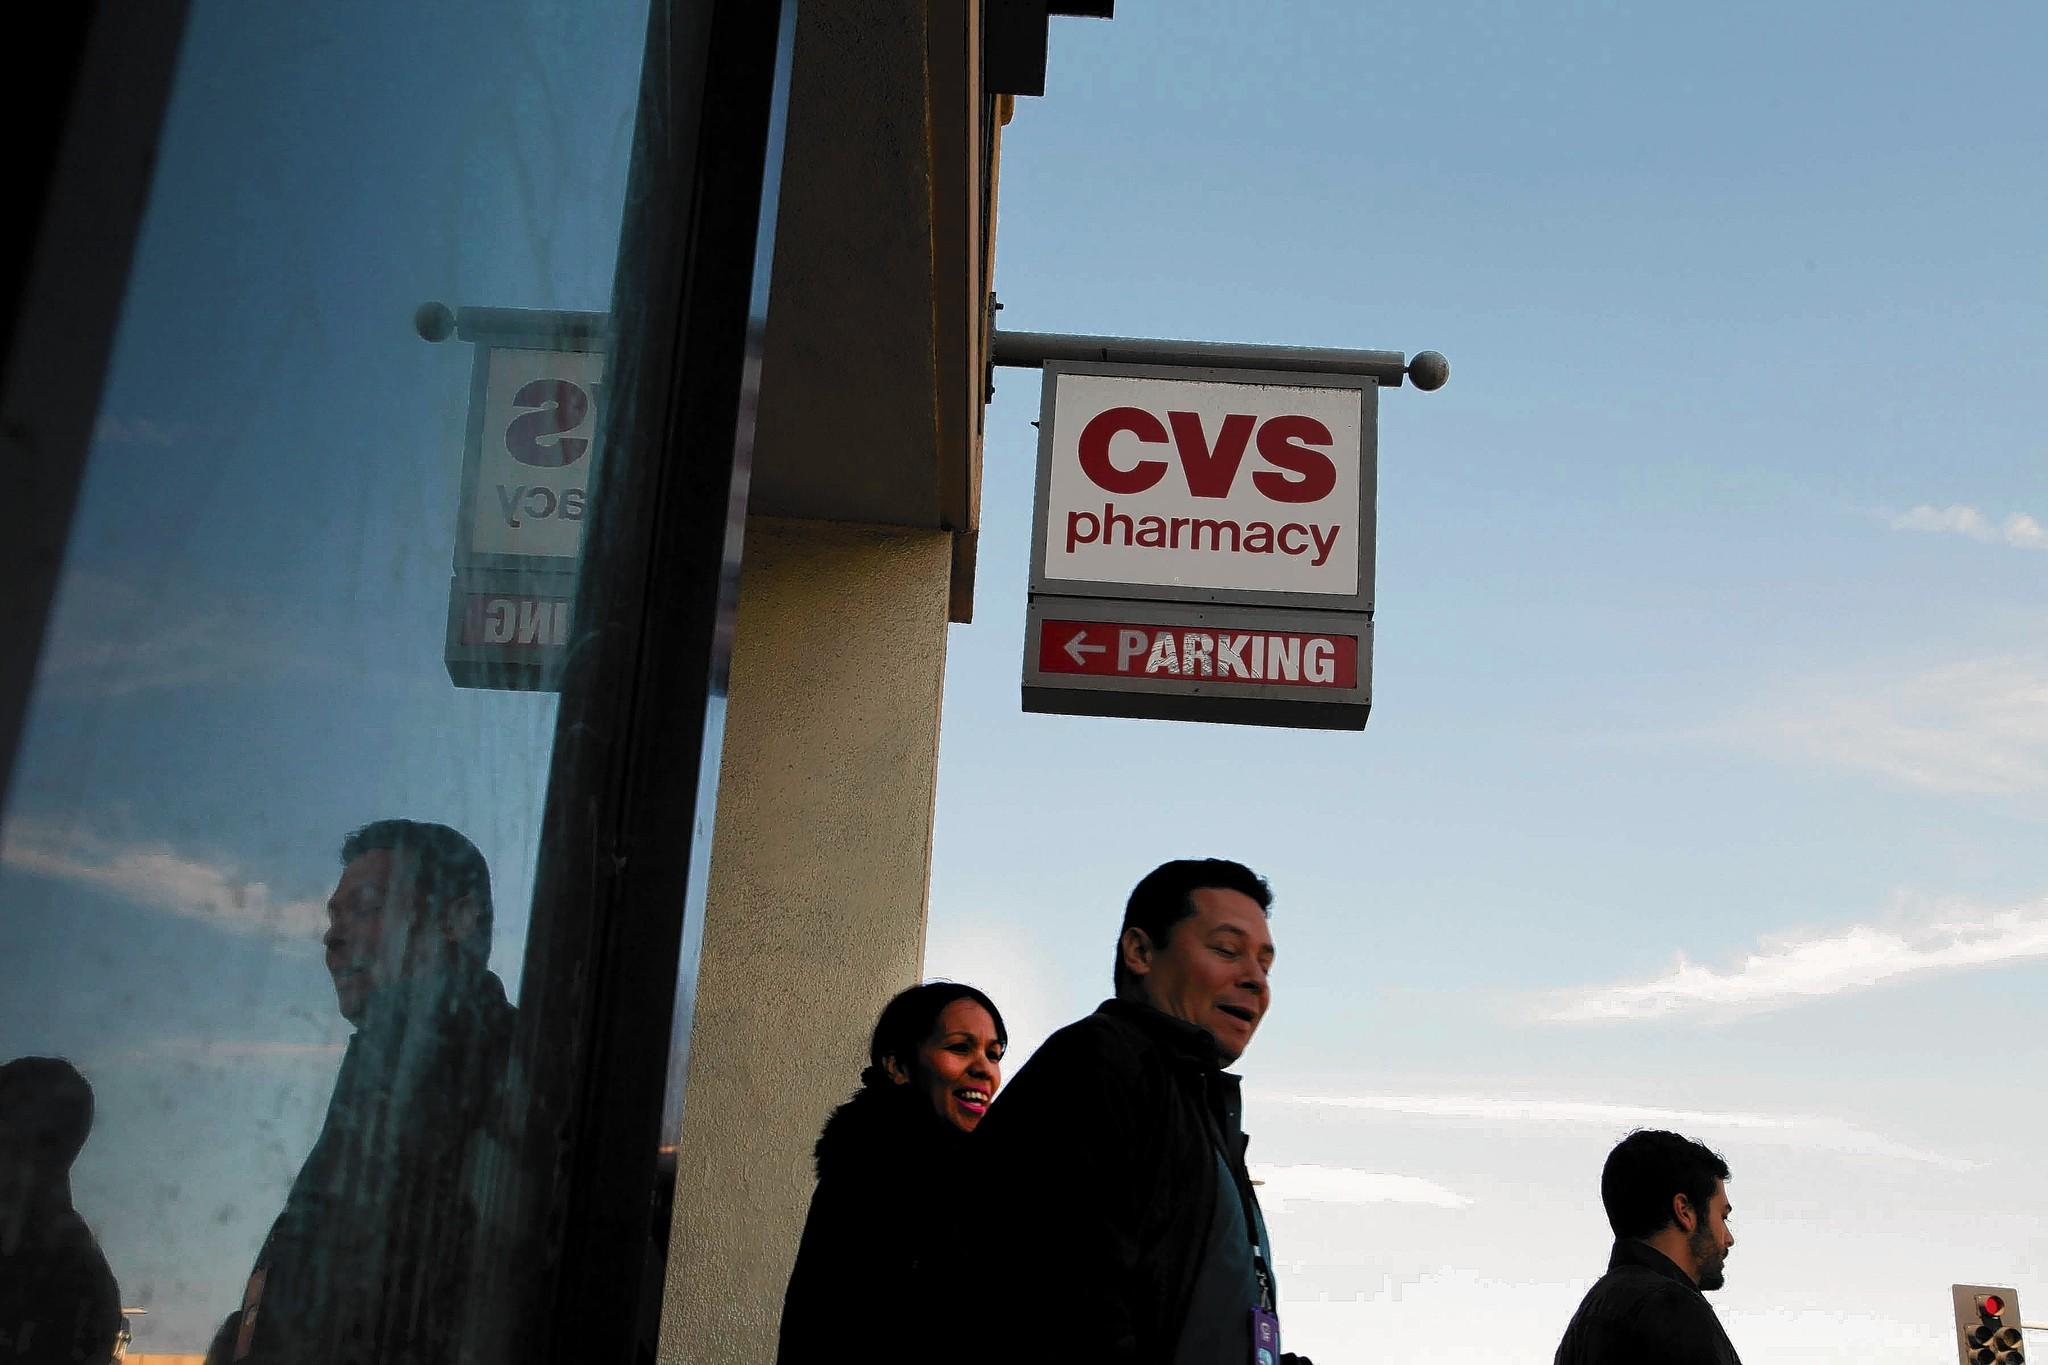 CVS said Wednesday that it will be tobacco free by Oct. 1. The drugstore chain has more than 7,600 stores, making it second in retail locations only to Walgreens.